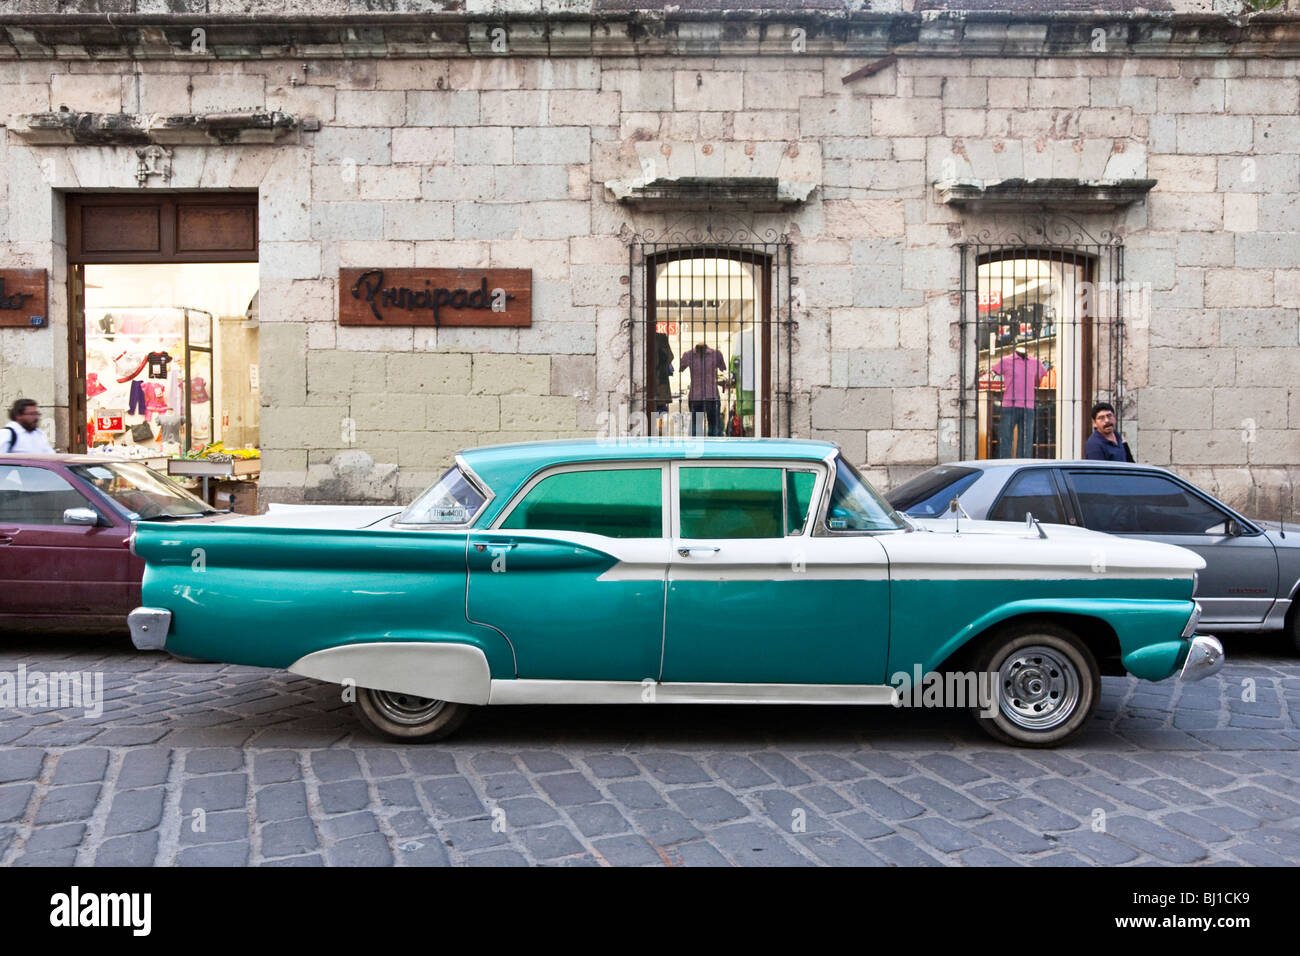 two tone aqua & white fifties Ford restored to finny glory sits on Oaxaca City street in front of boutique Oaxaca - Stock Image